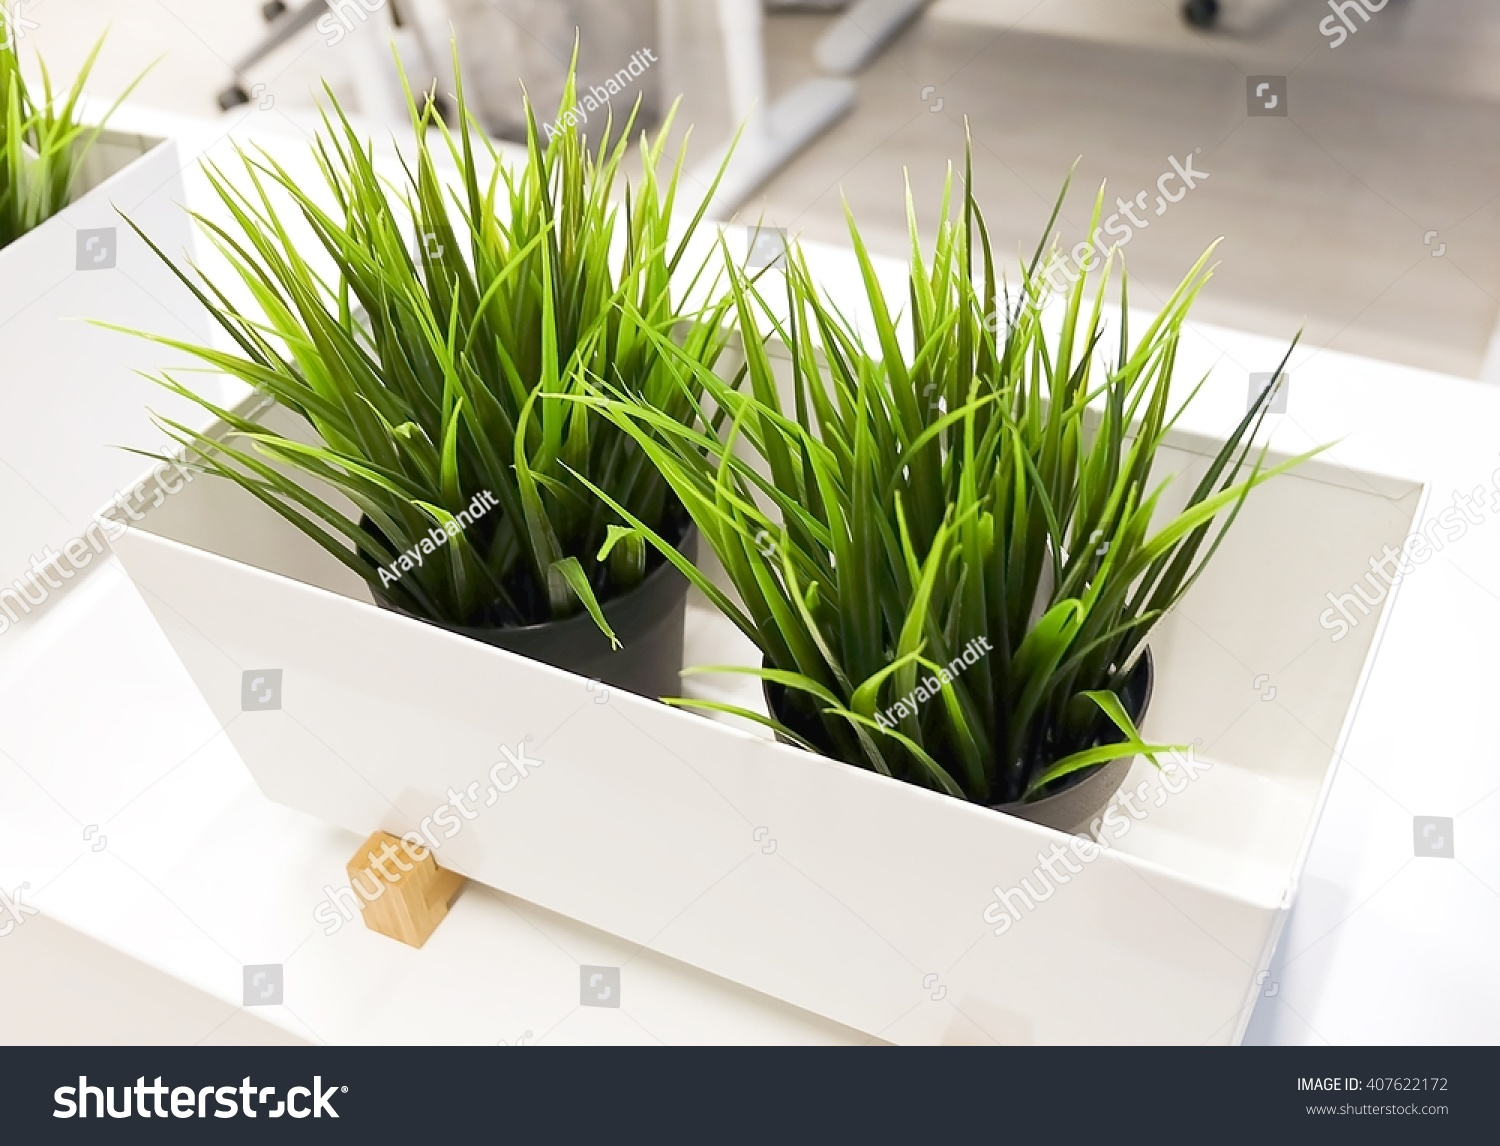 save to a lightbox artificial plants for office decor